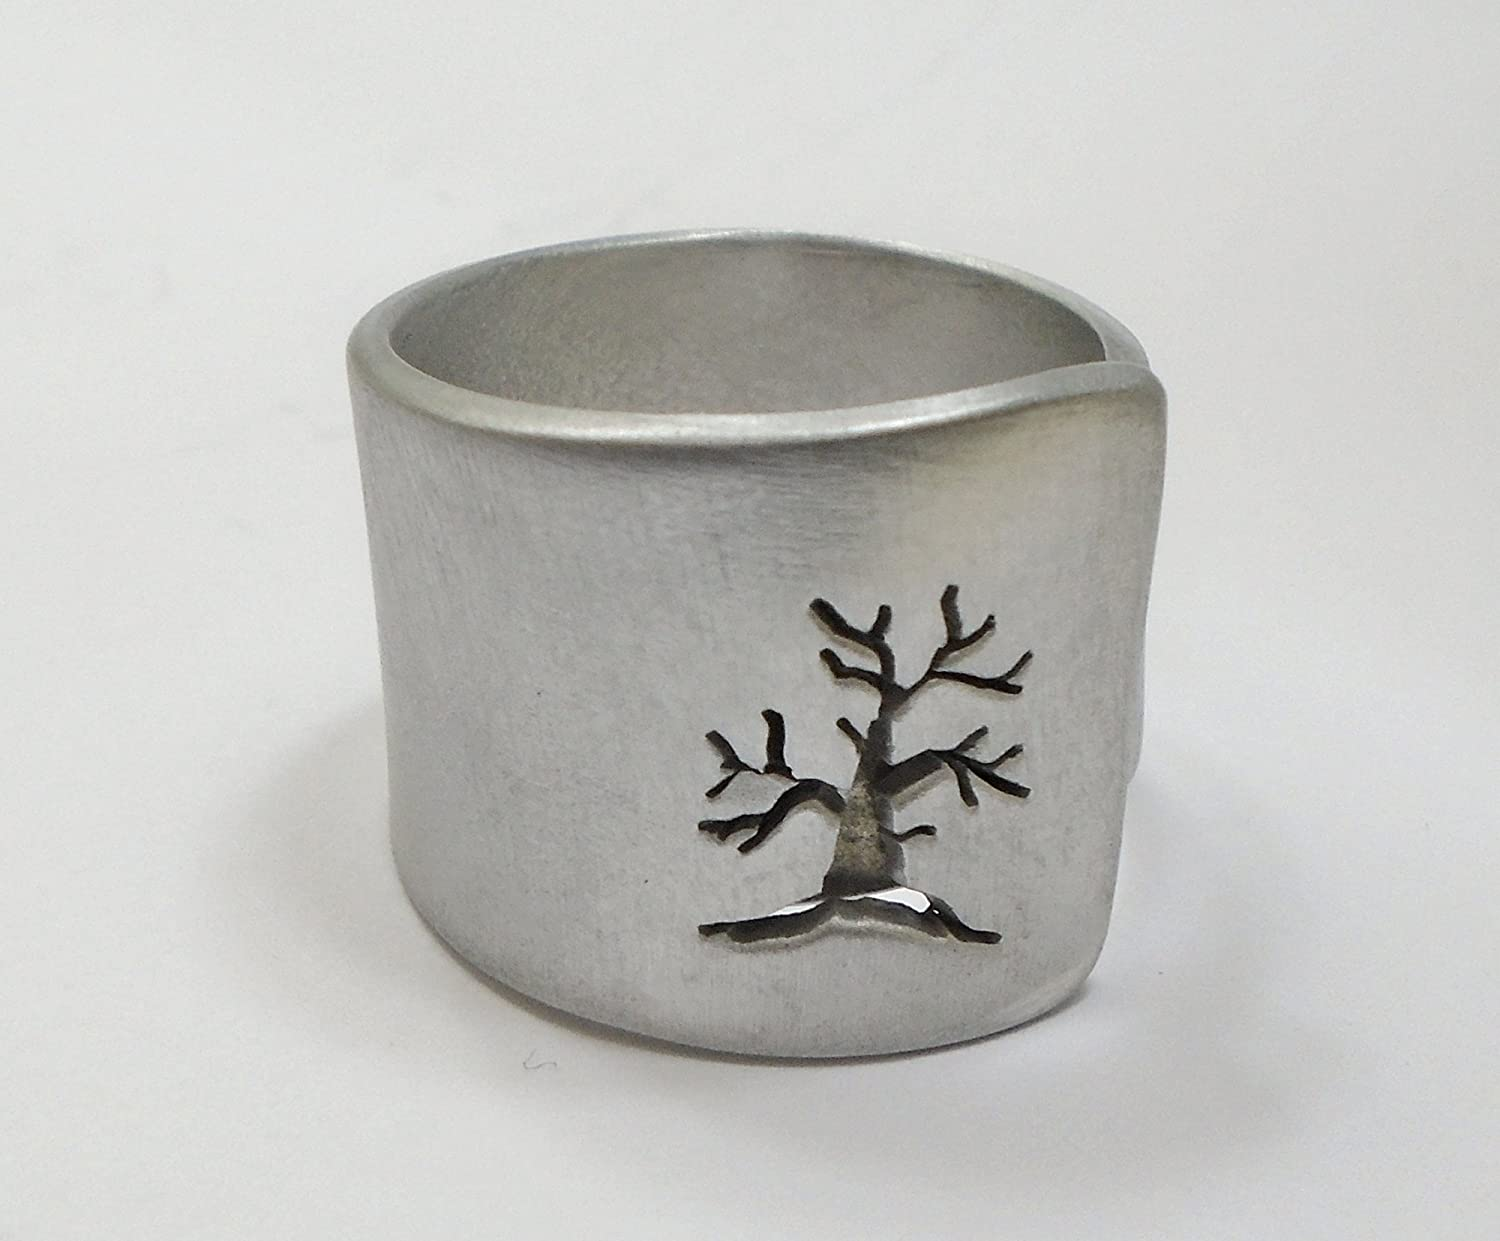 Open aluminum band ring with perforated tree perpendicular to the ring, and custom text.